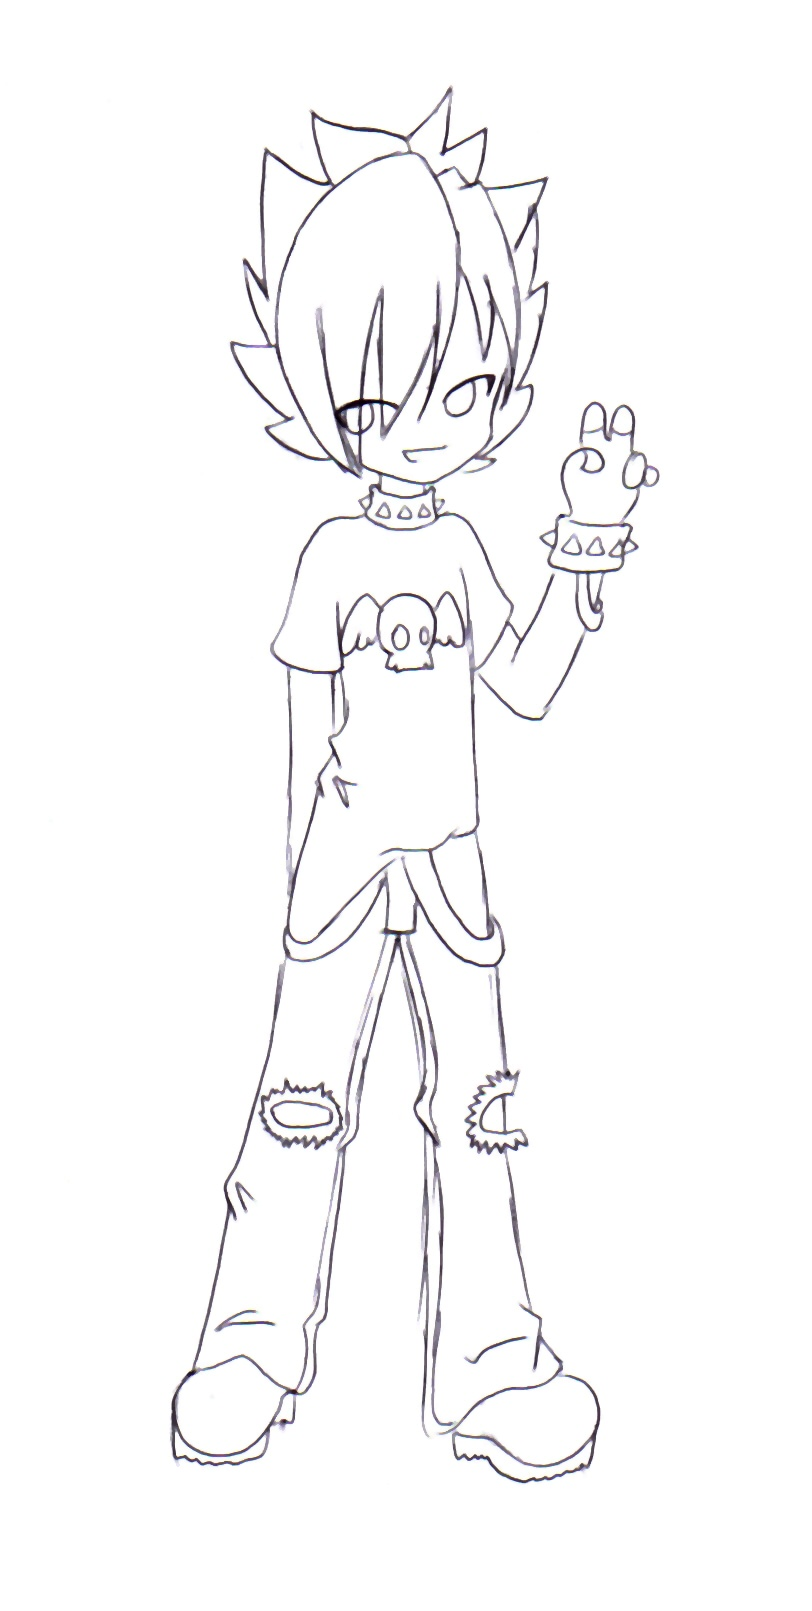 anime chibi boy coloring pages - photo#18